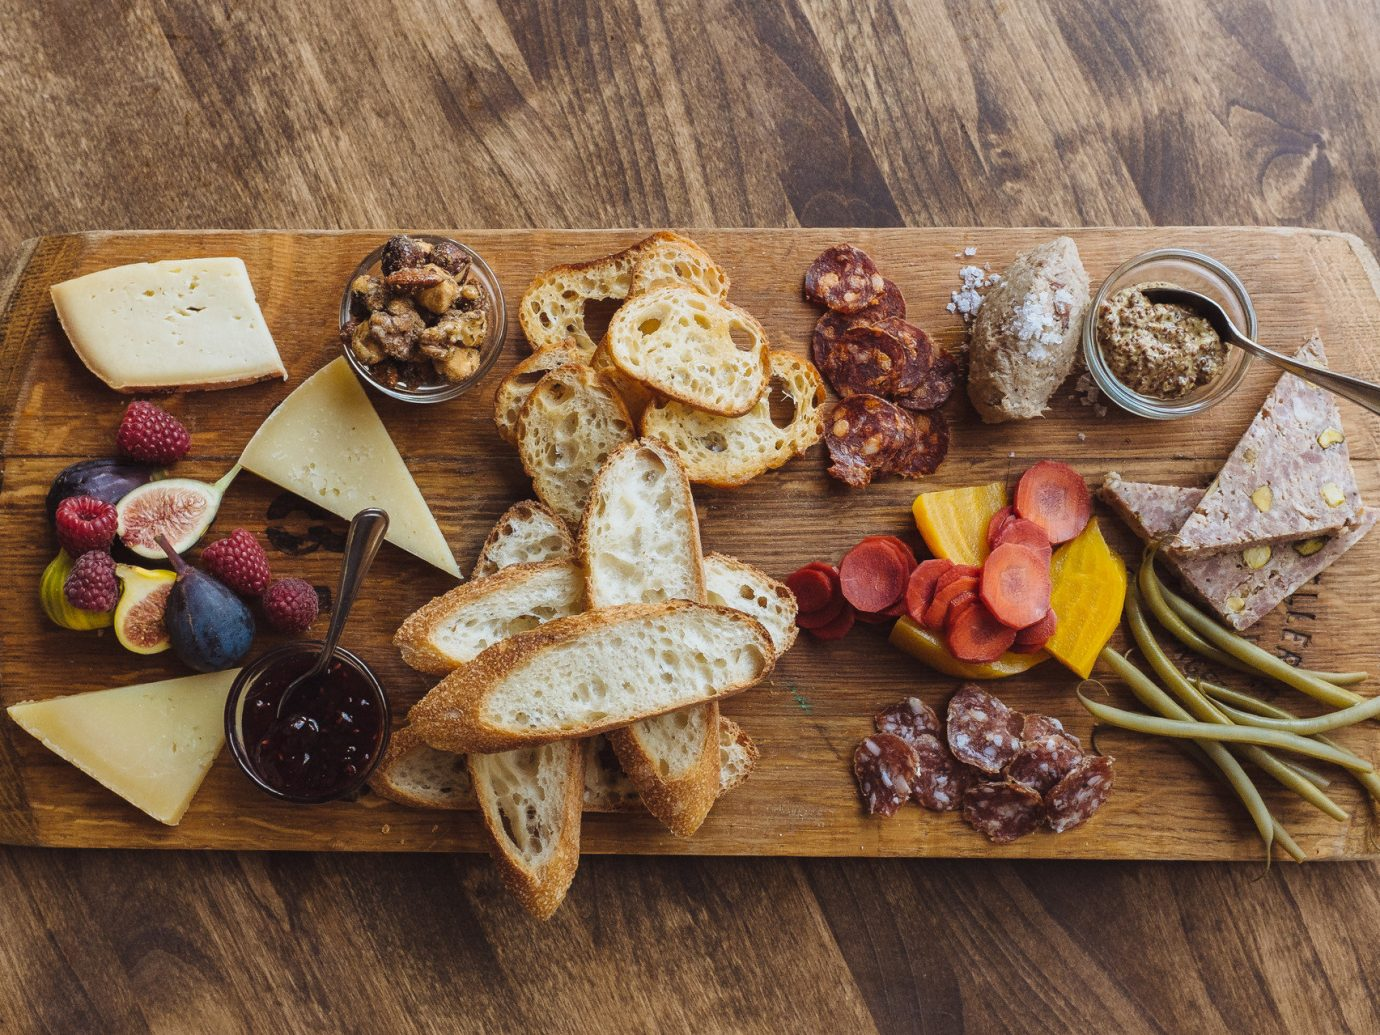 appetizer charcuterie Dining Eat food Food + Drink gourmet Health + Wellness Travel Tips floor meal wooden produce breakfast baking flavor wood sliced